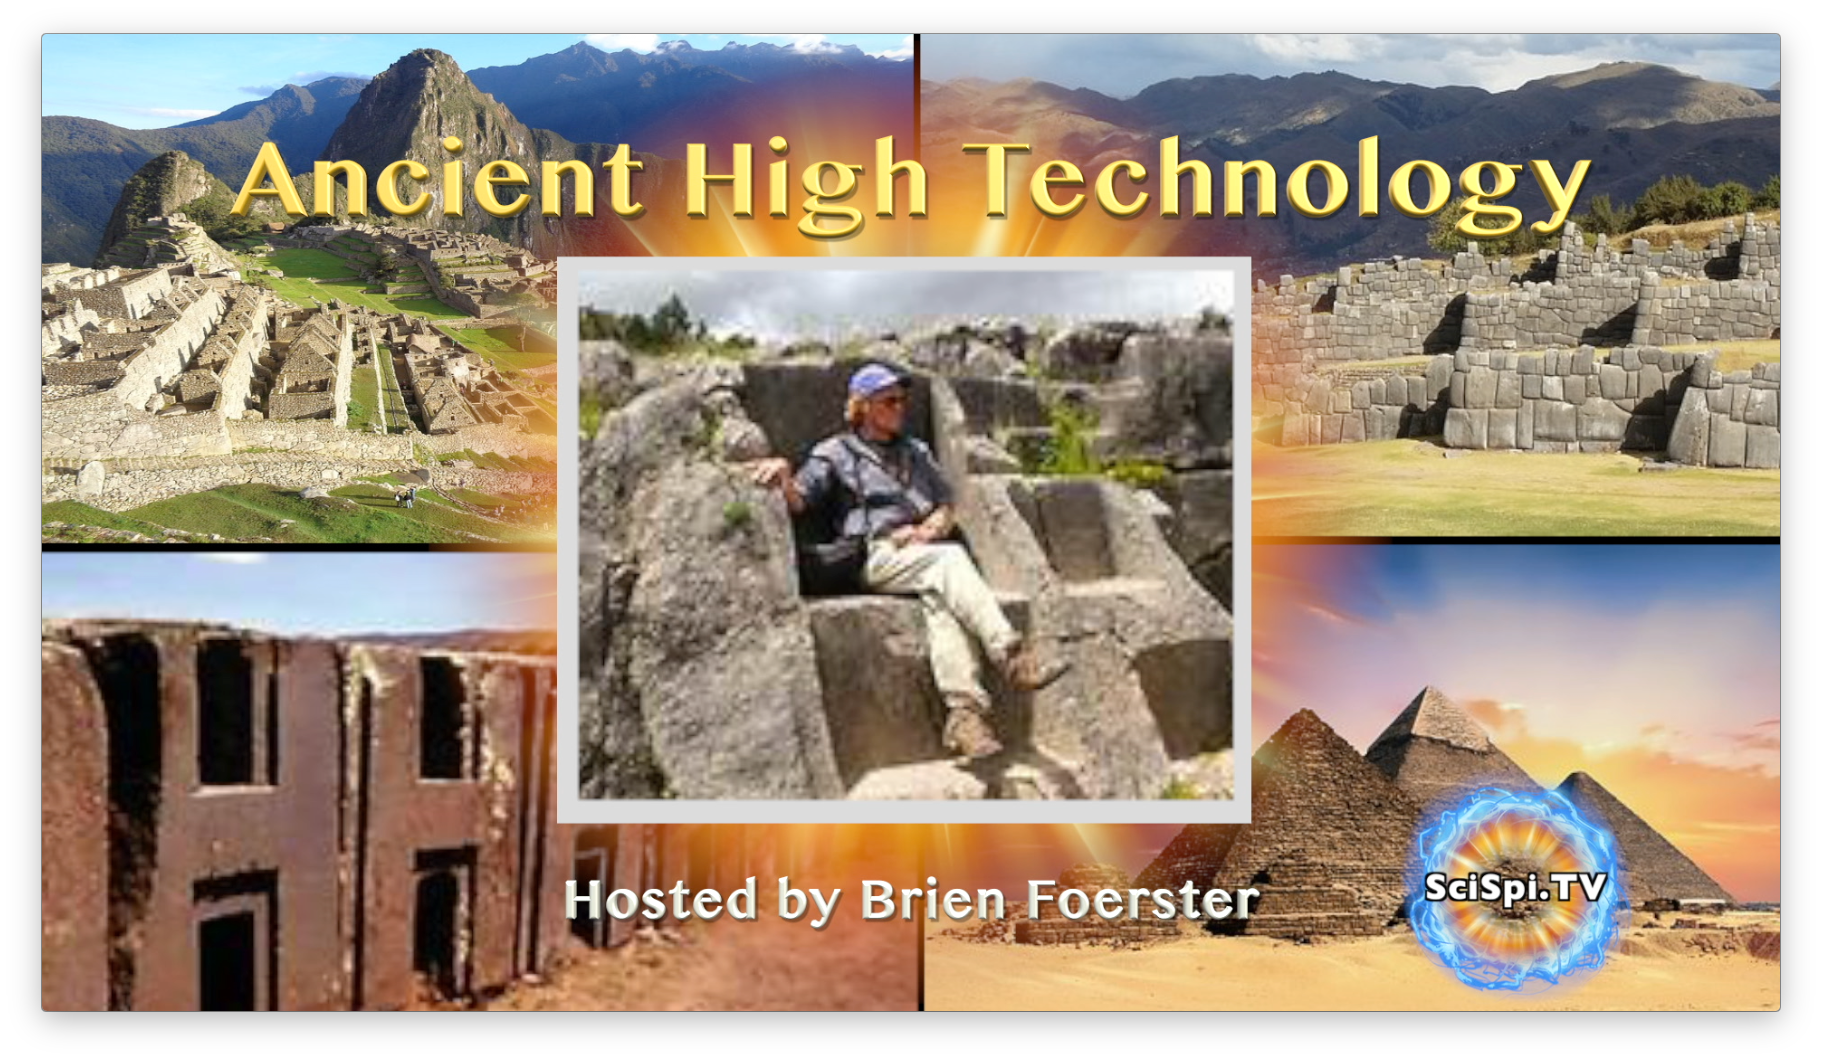 Ancient High Technology - Brien Foerster